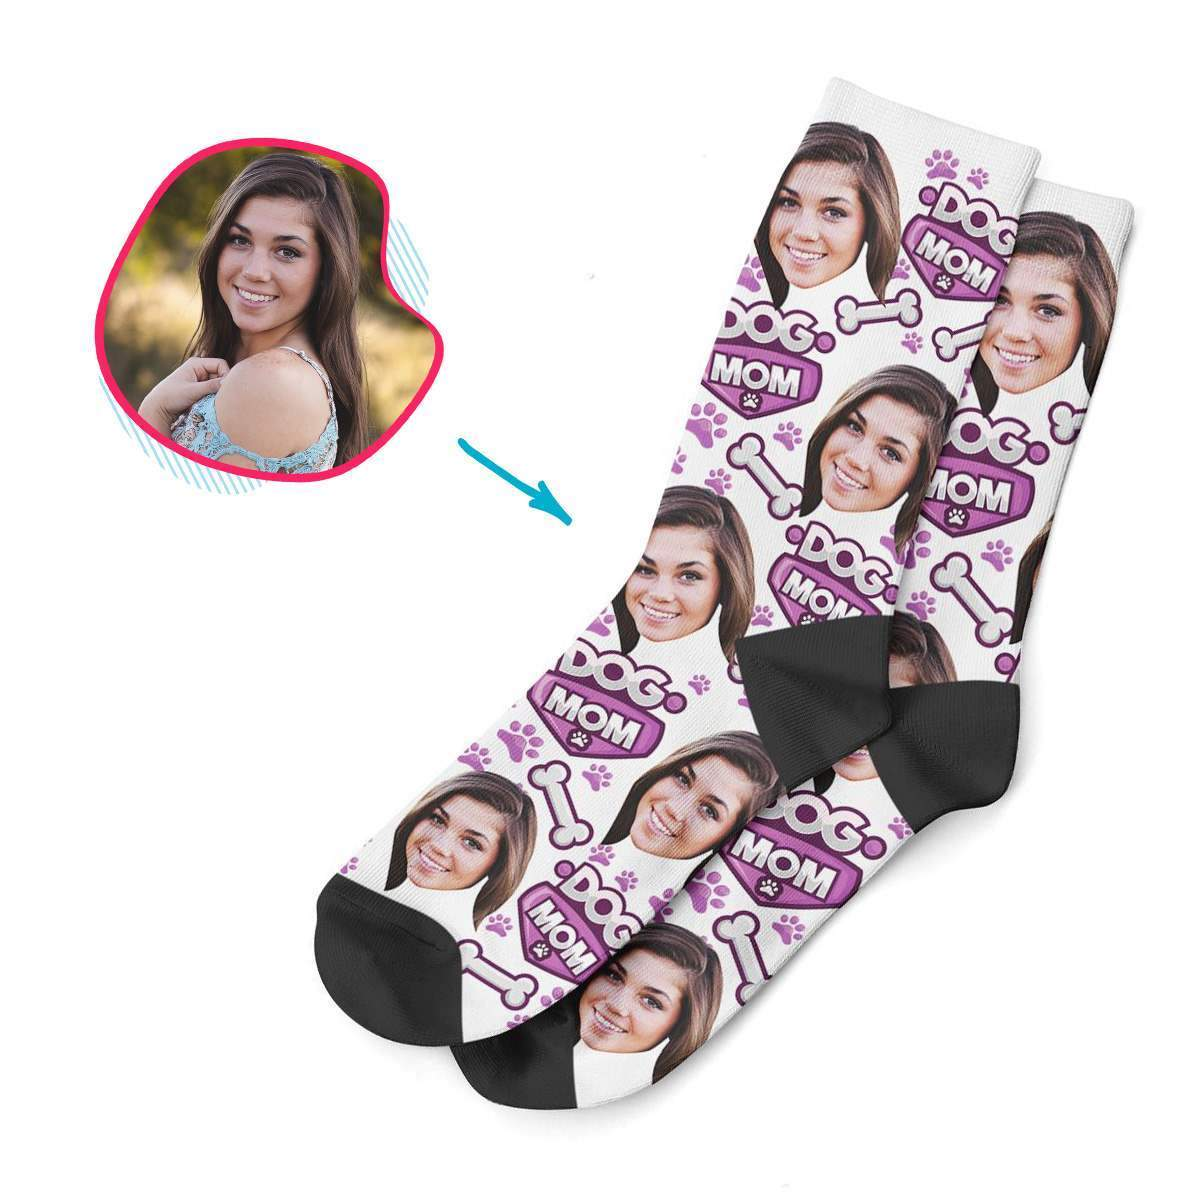 white Dog Mom socks personalized with photo of face printed on them